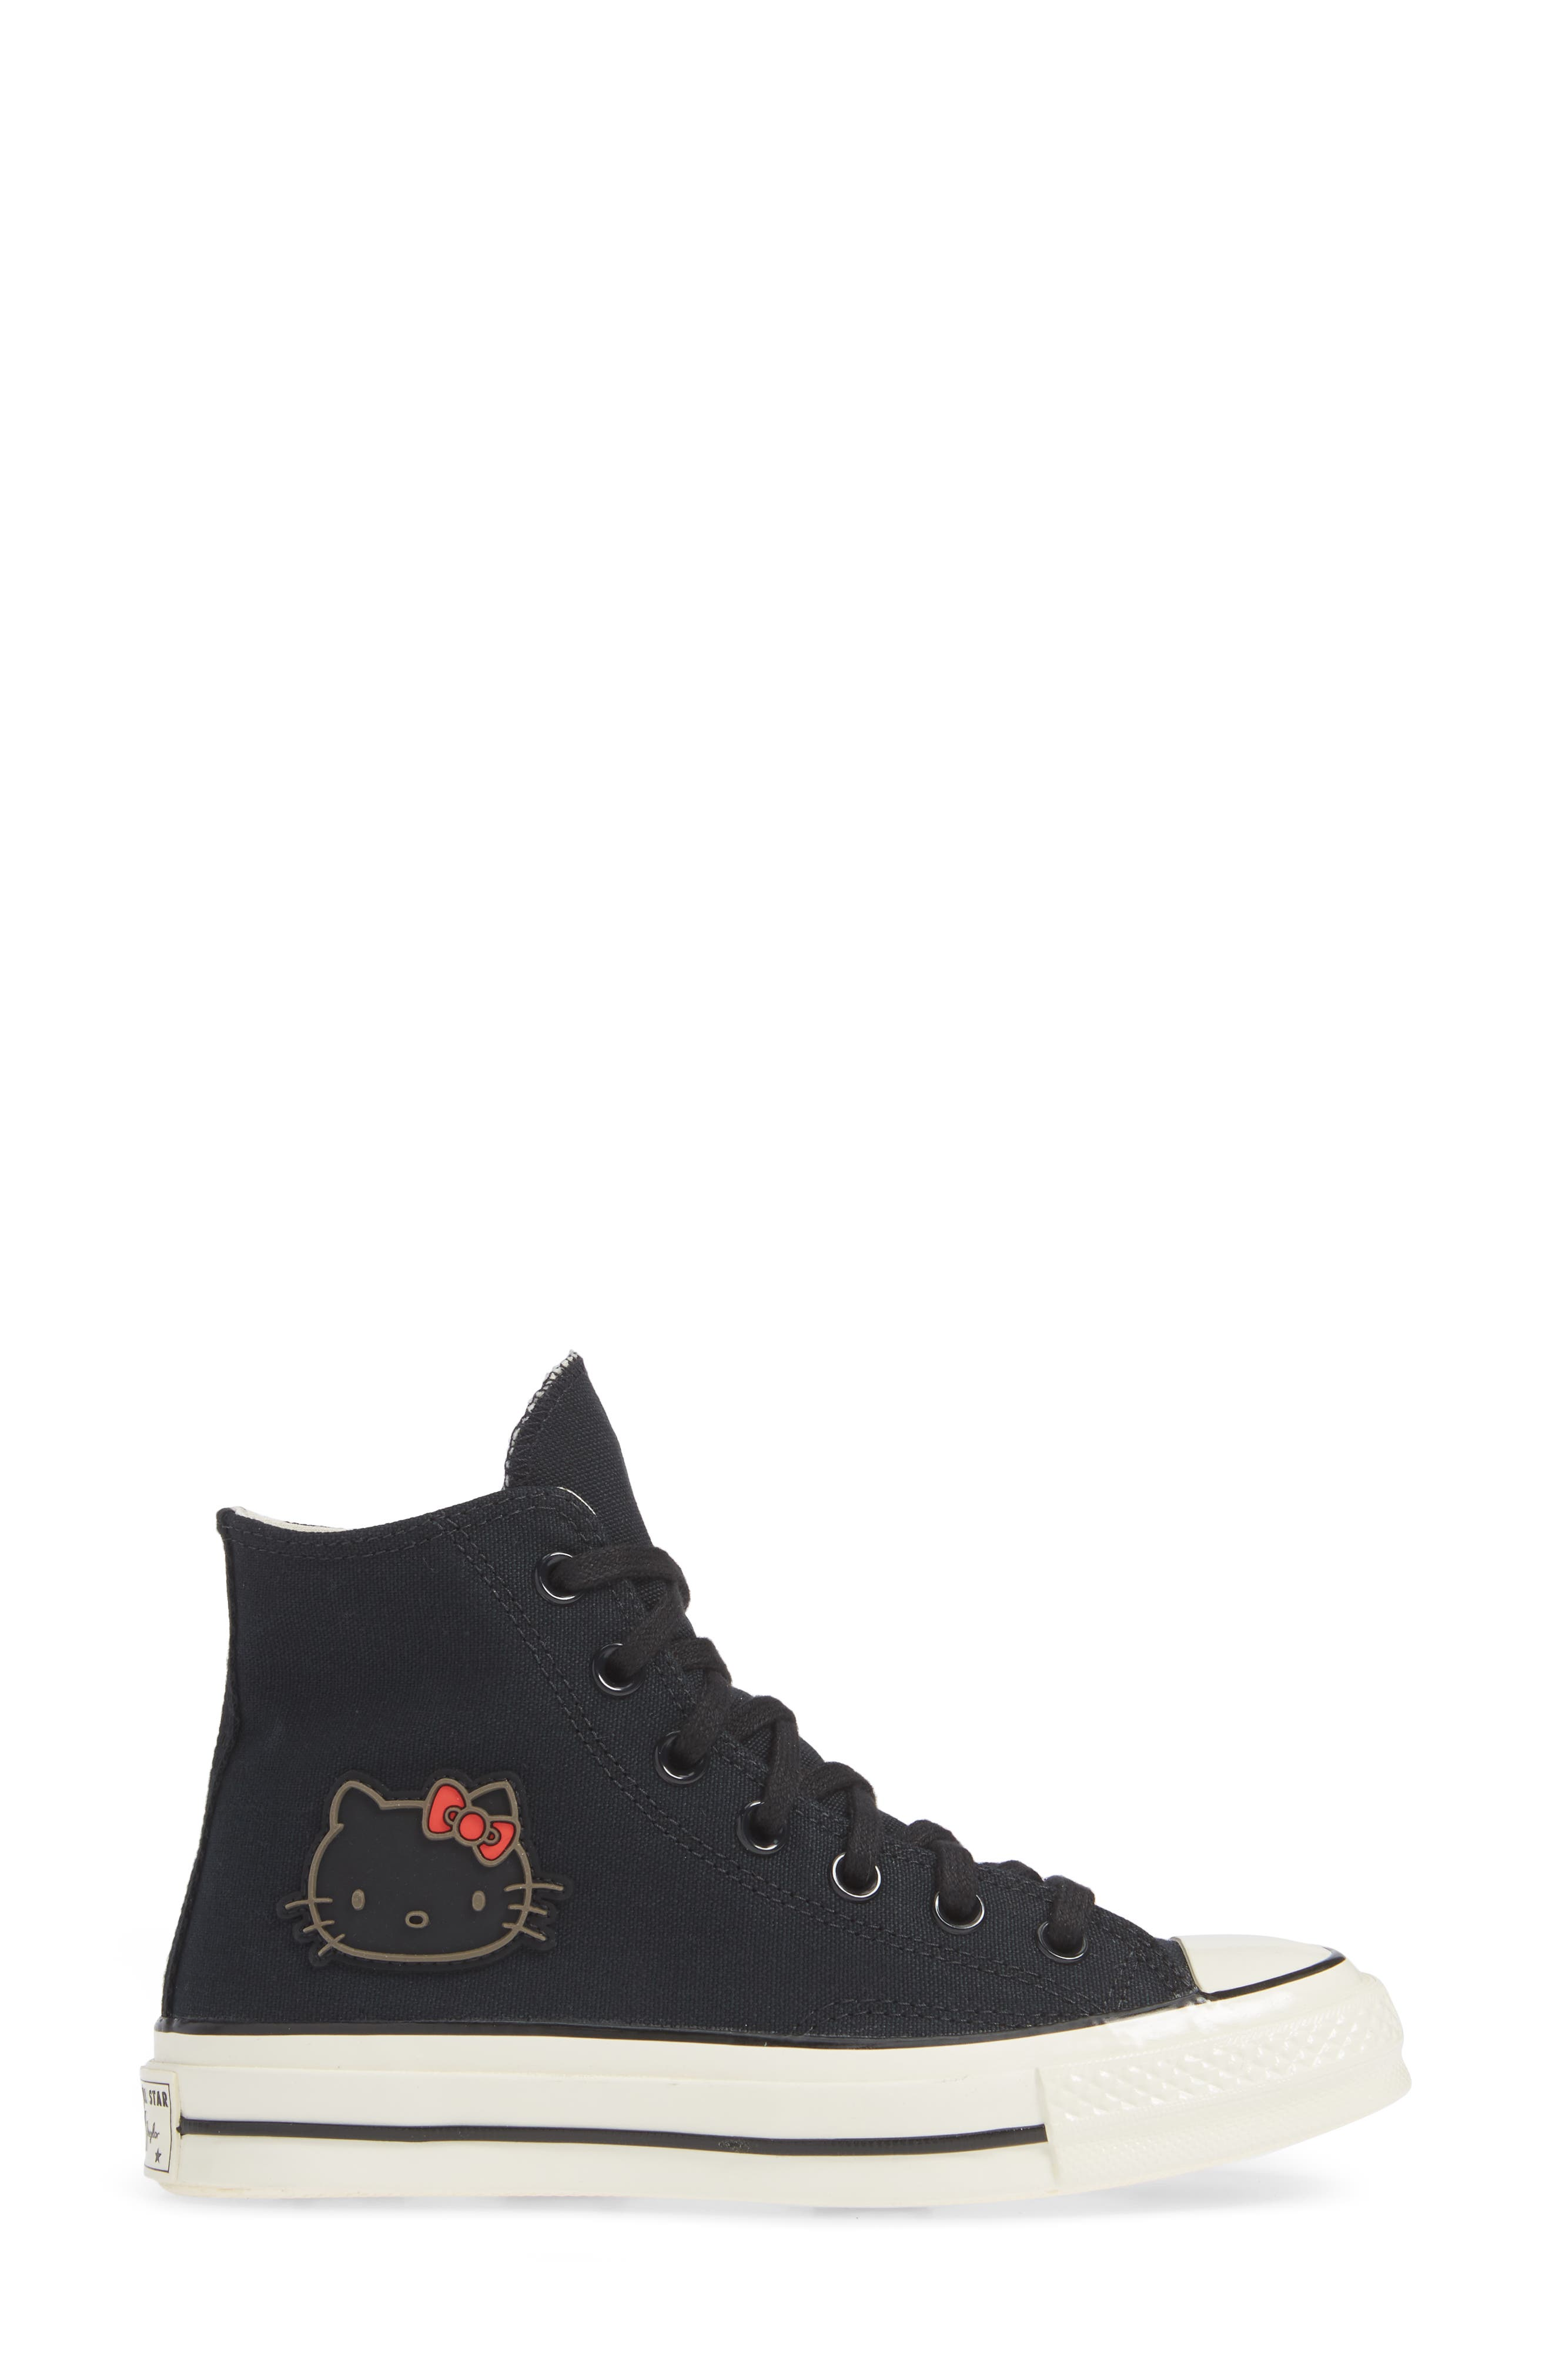 x Hello Kitty<sup>®</sup> Chuck Taylor<sup>®</sup> All Star<sup>®</sup> CT 70 High Top Sneaker,                             Alternate thumbnail 3, color,                             CONVERSE BLACK